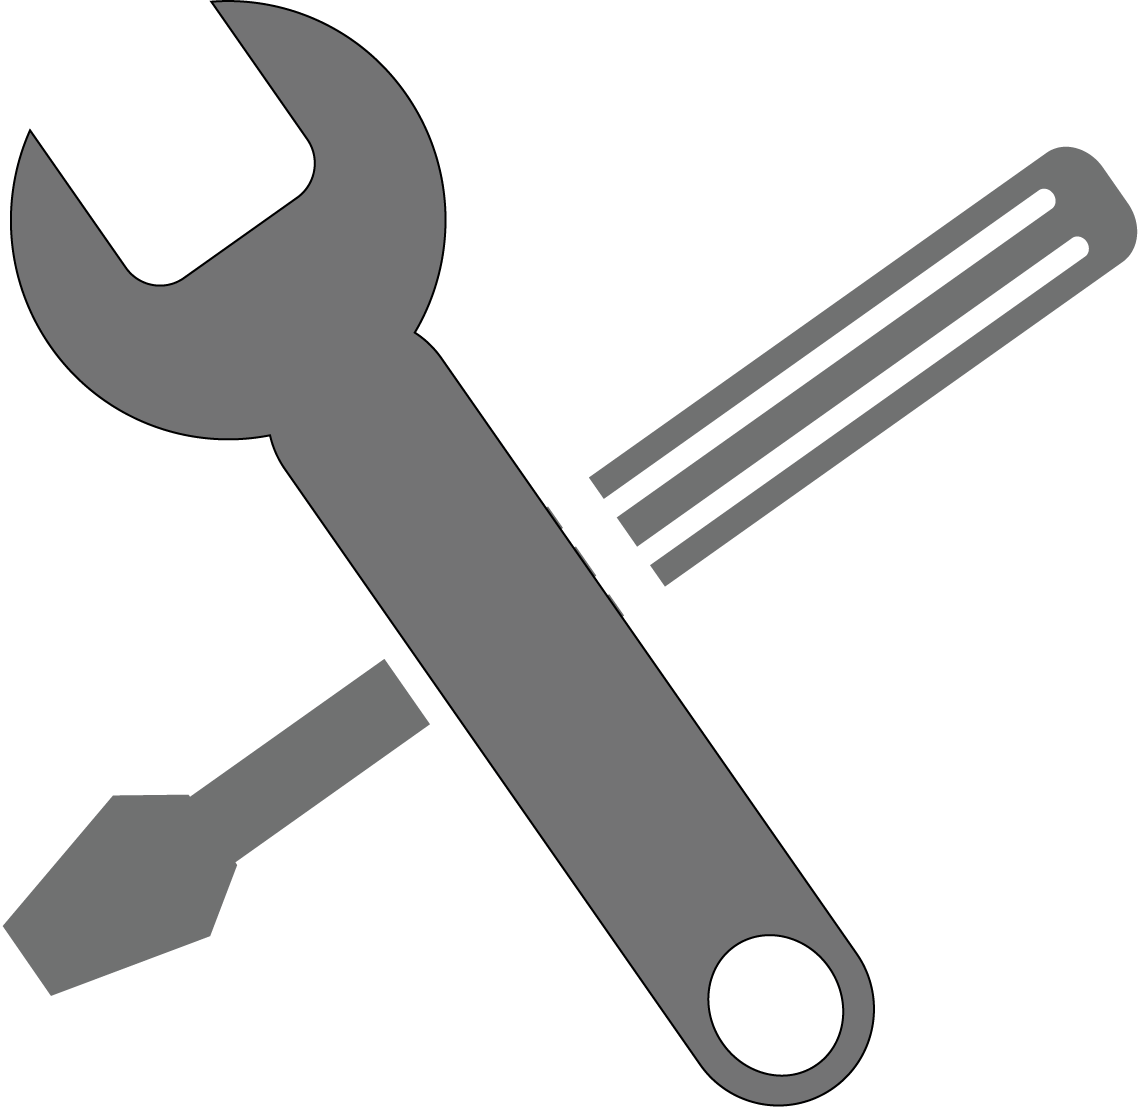 Wrench logo png. Image battle for dream